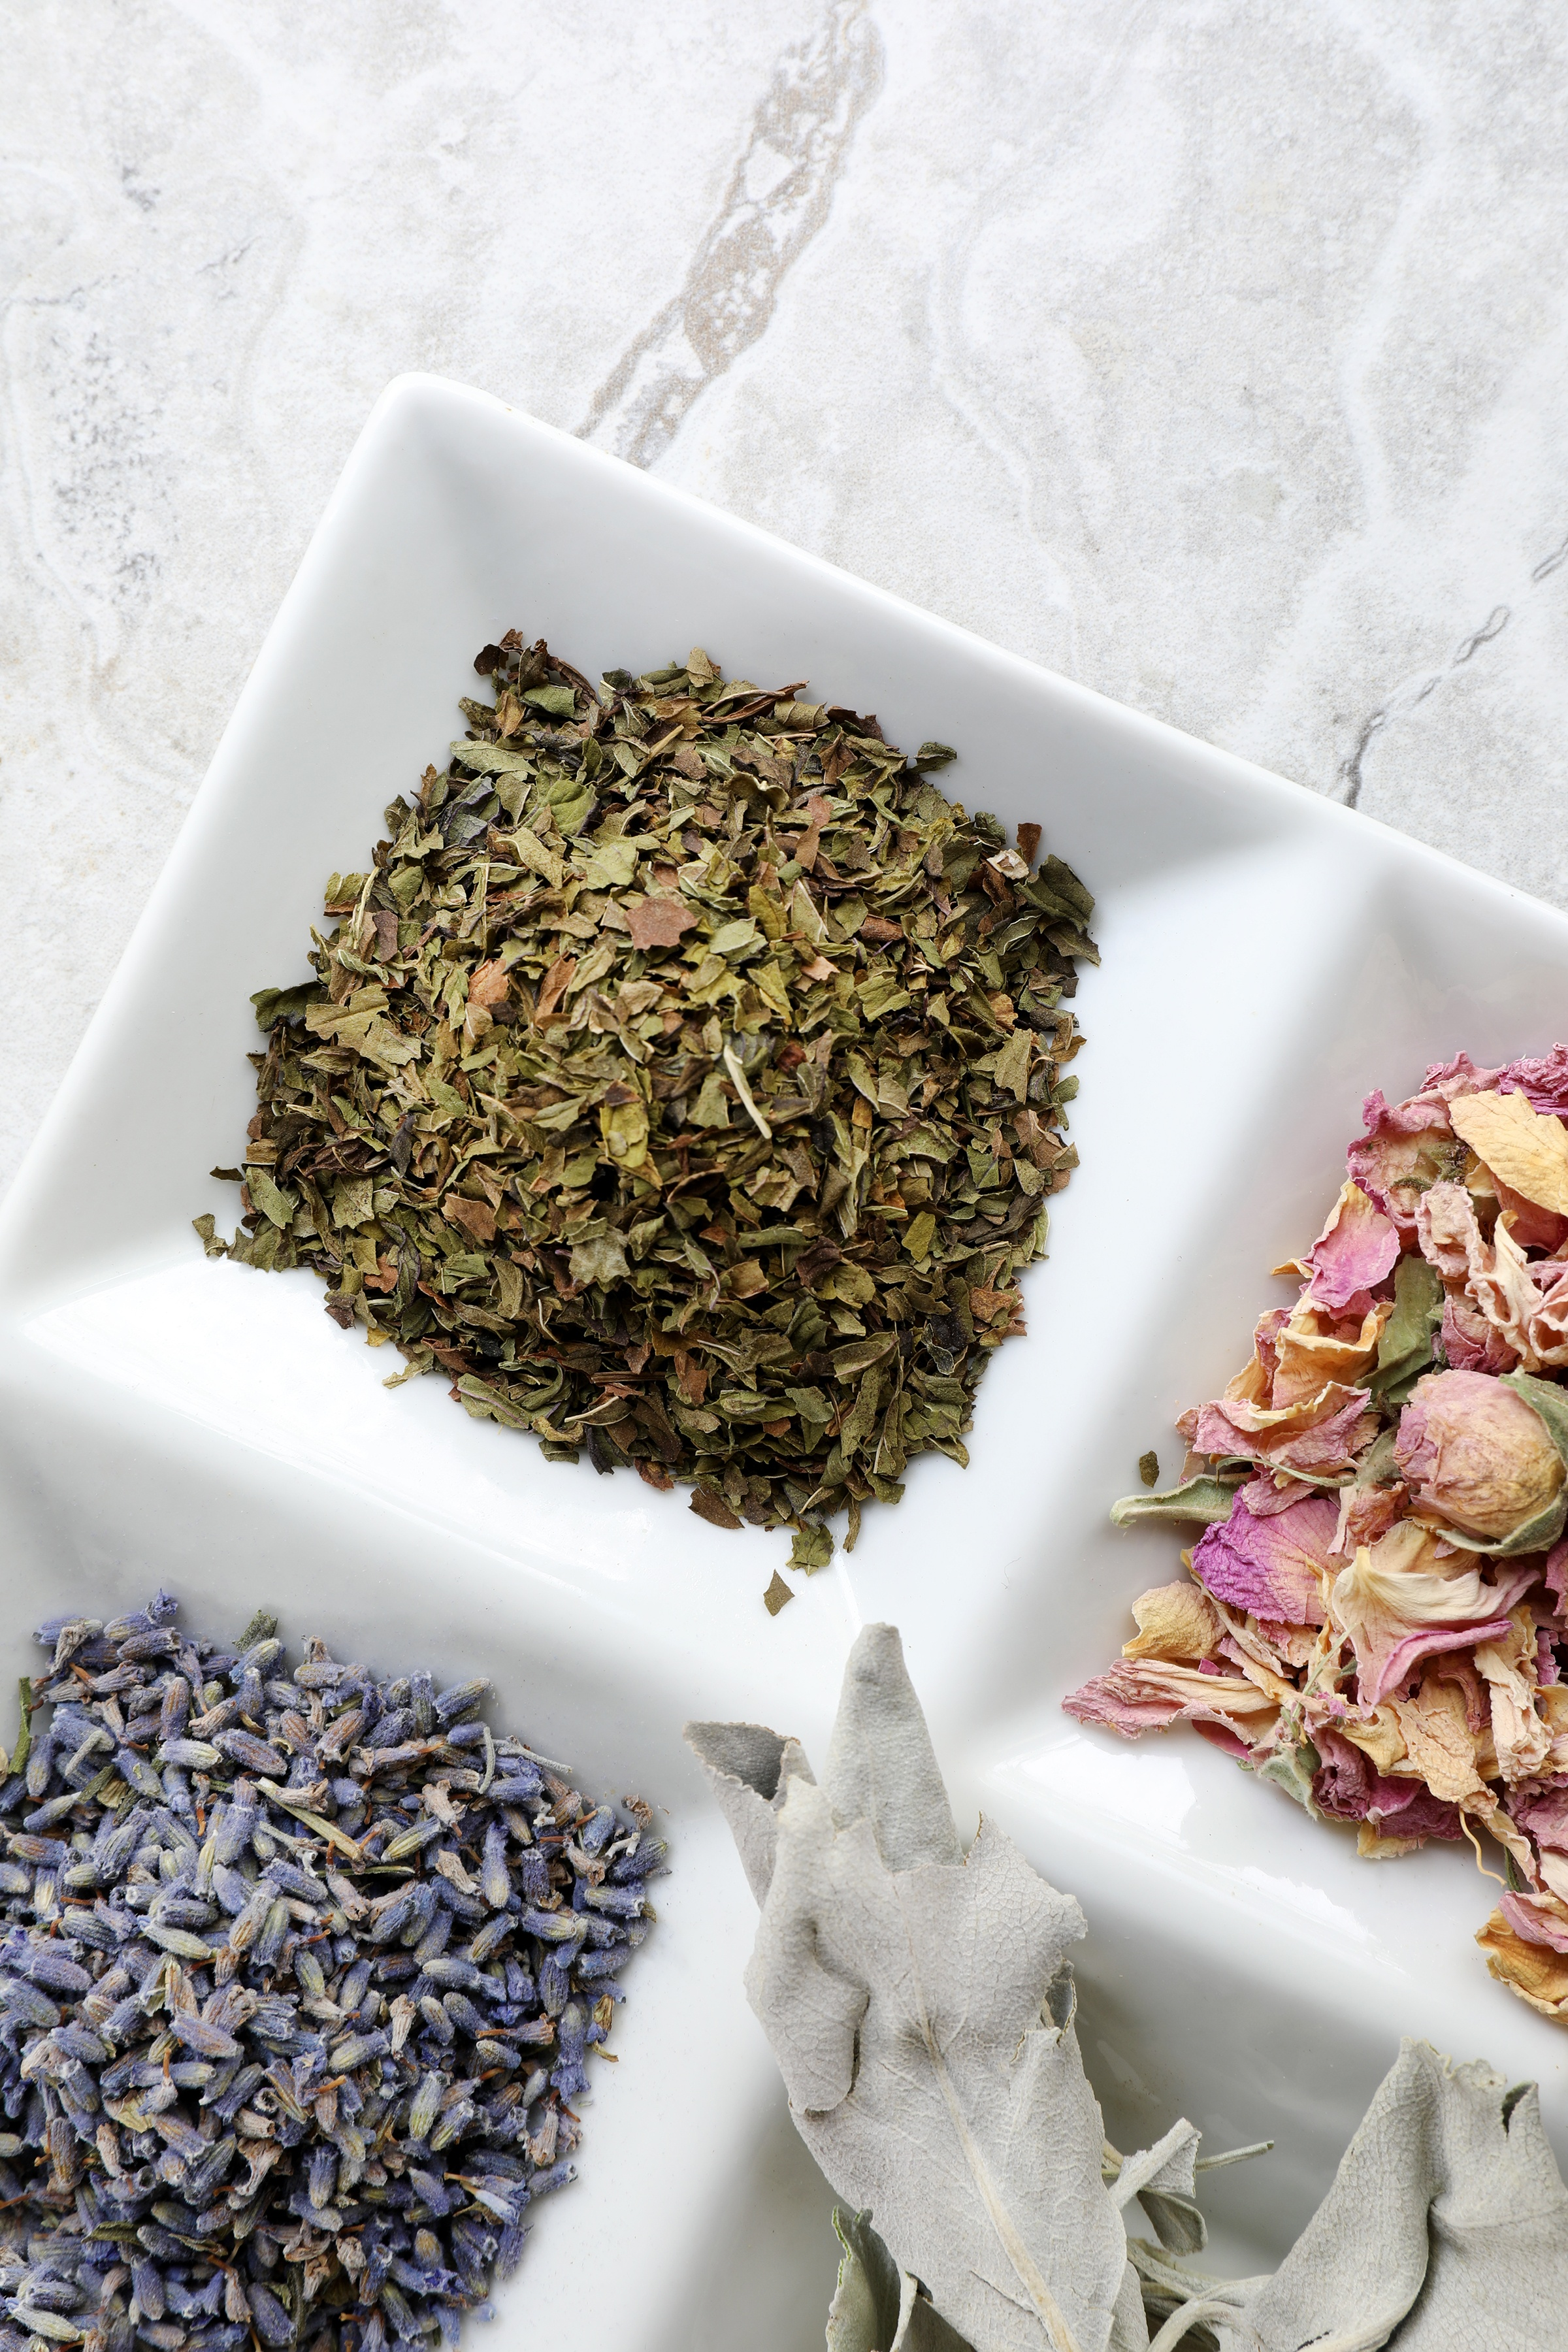 Dried herbs including lavender flowers and rose buds in divided white porcelain container on marble counter